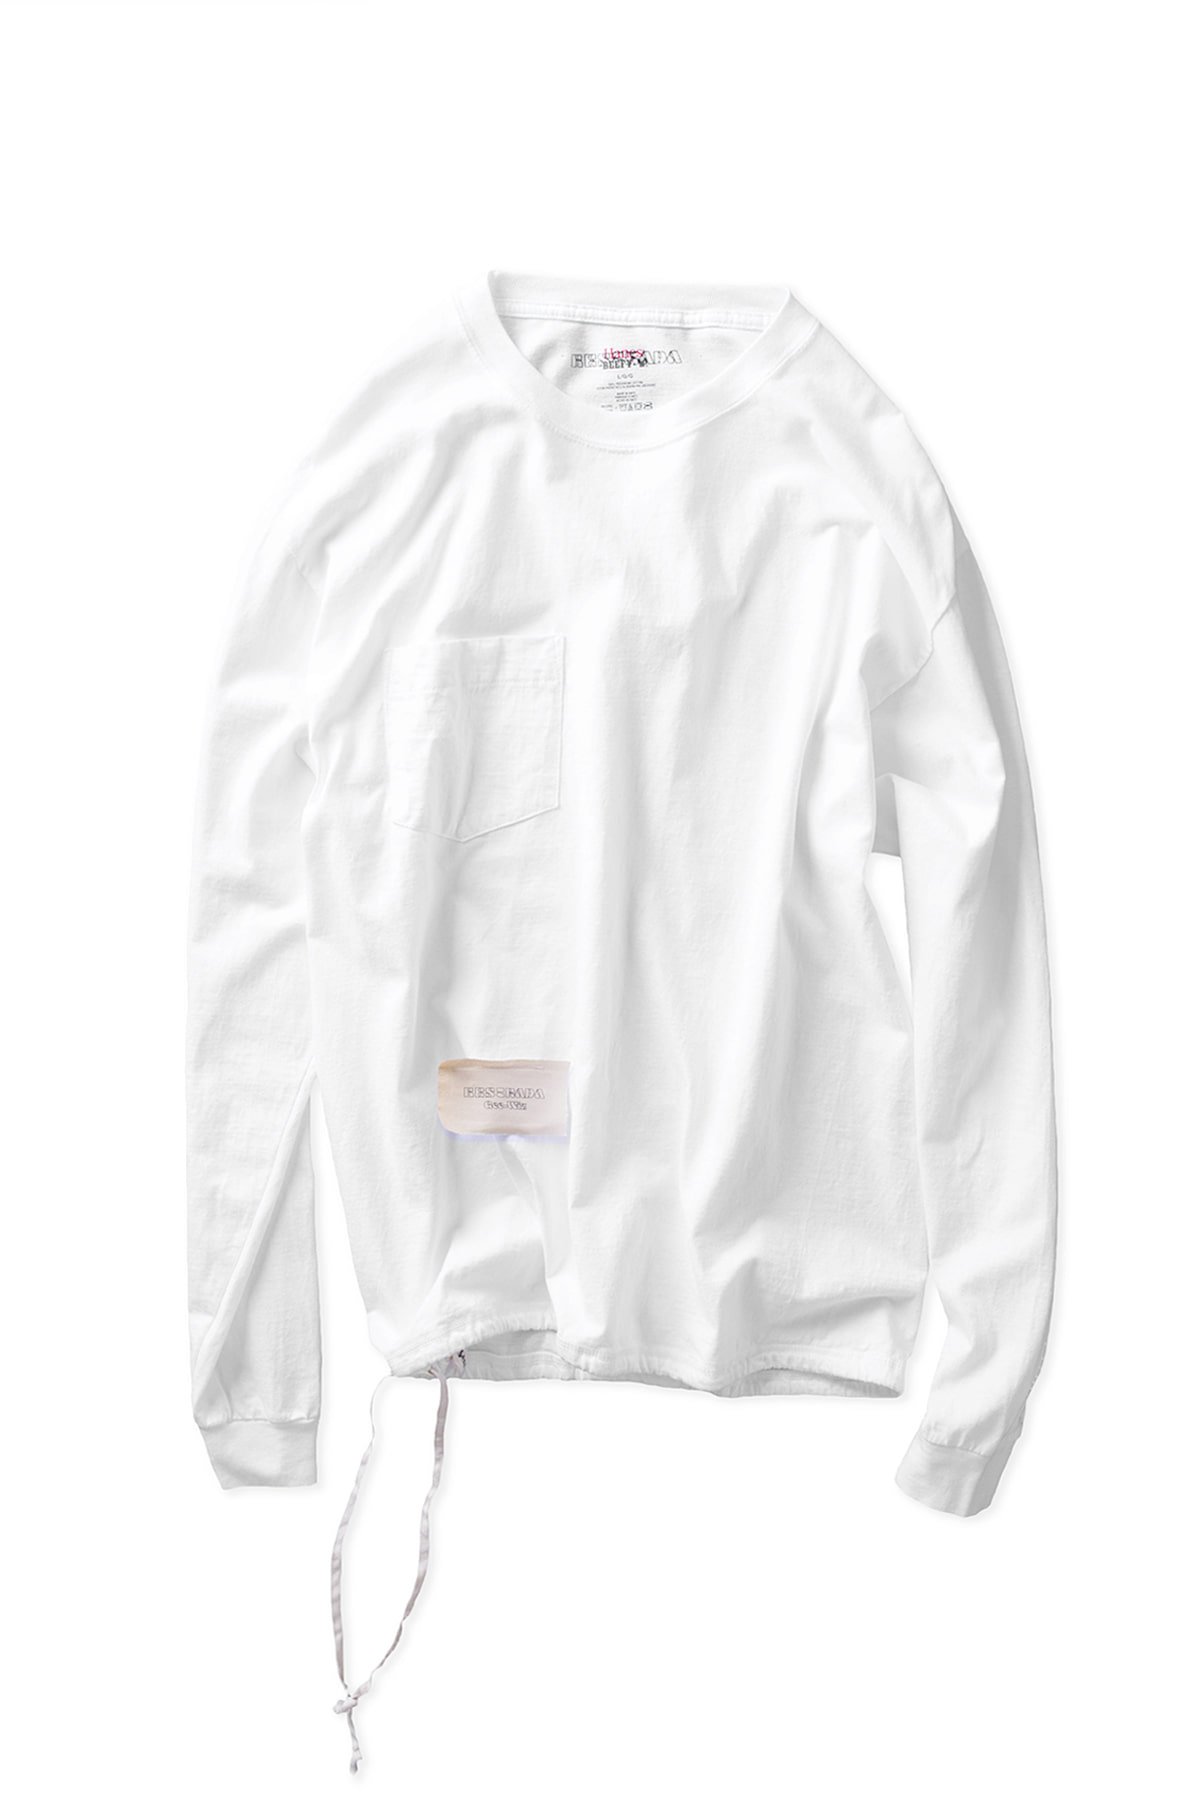 HESTRADA : Gee Wiz L/S Switch Pokcet Tee (White)